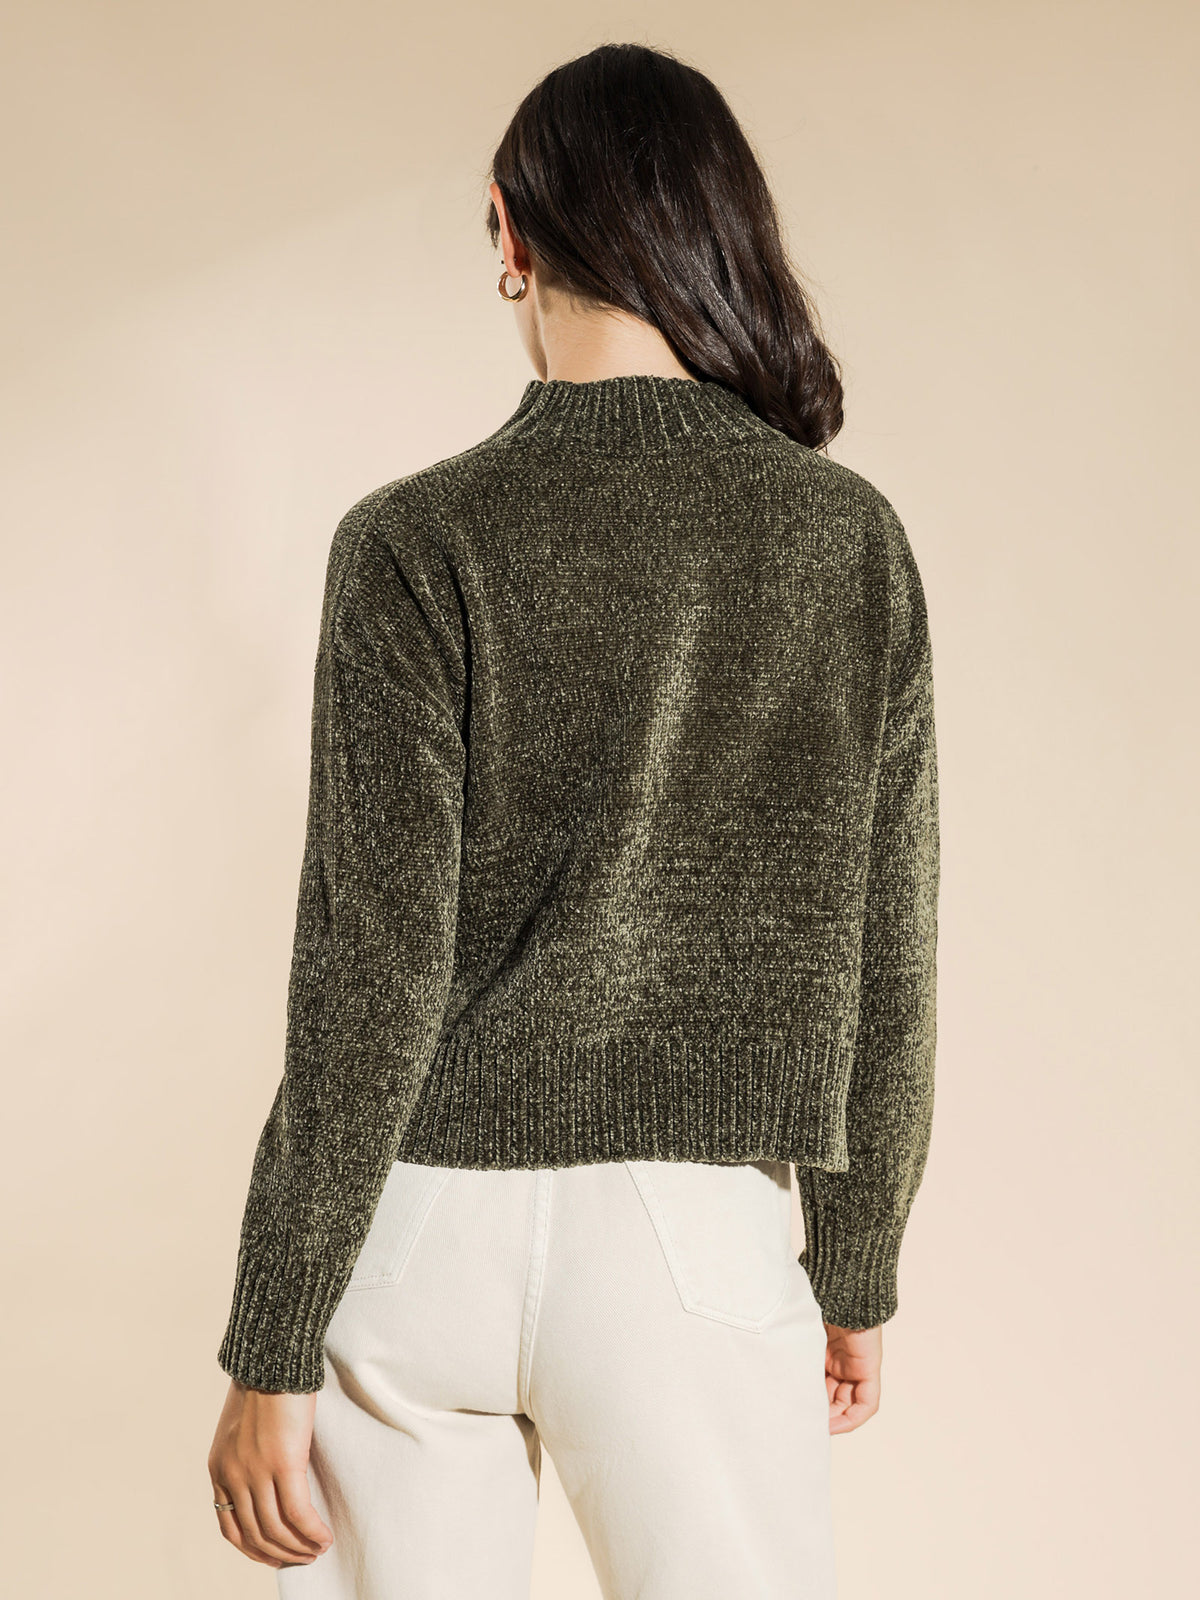 Hilda Chenille Knit in Olive